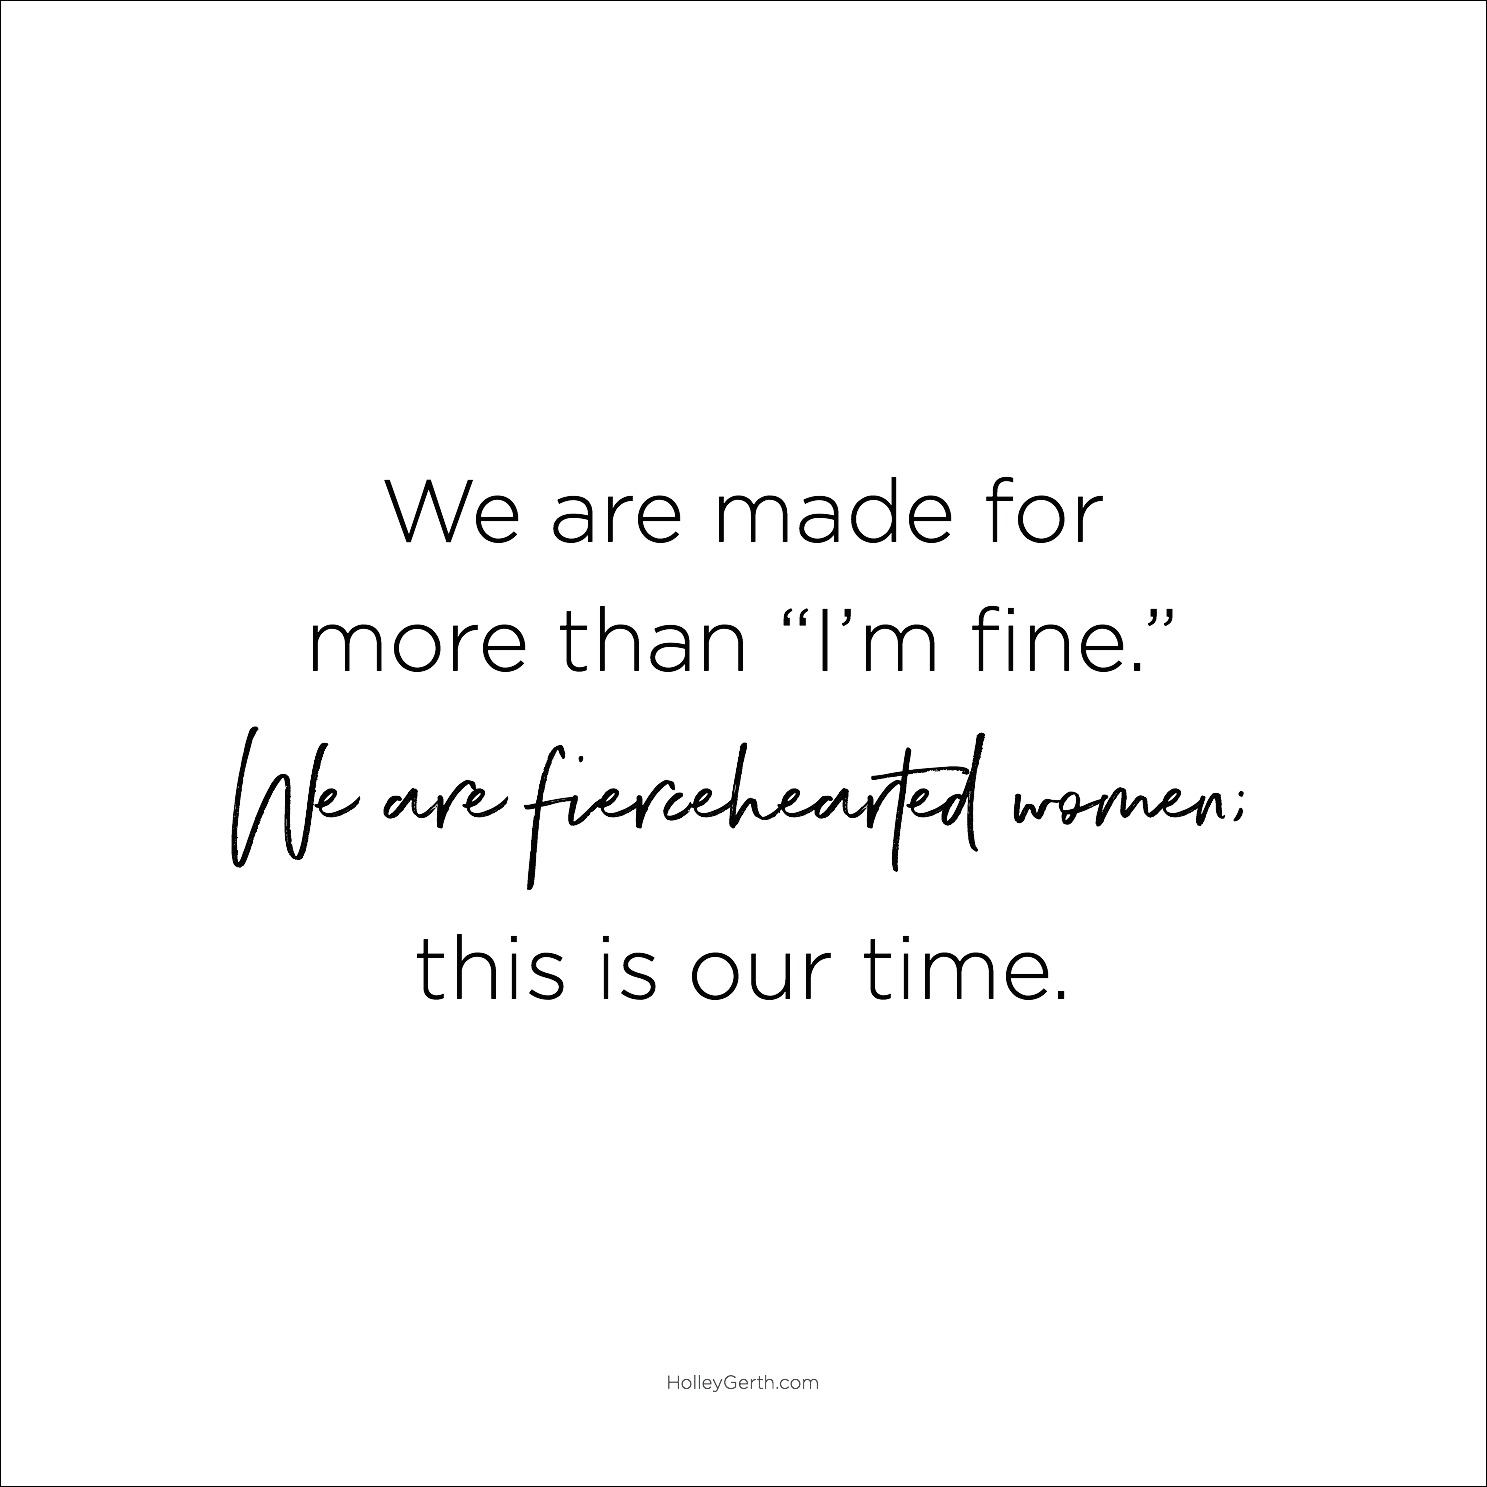 "We are made for more than ""I'm fine."" We are fiercehearted women; this is our time."